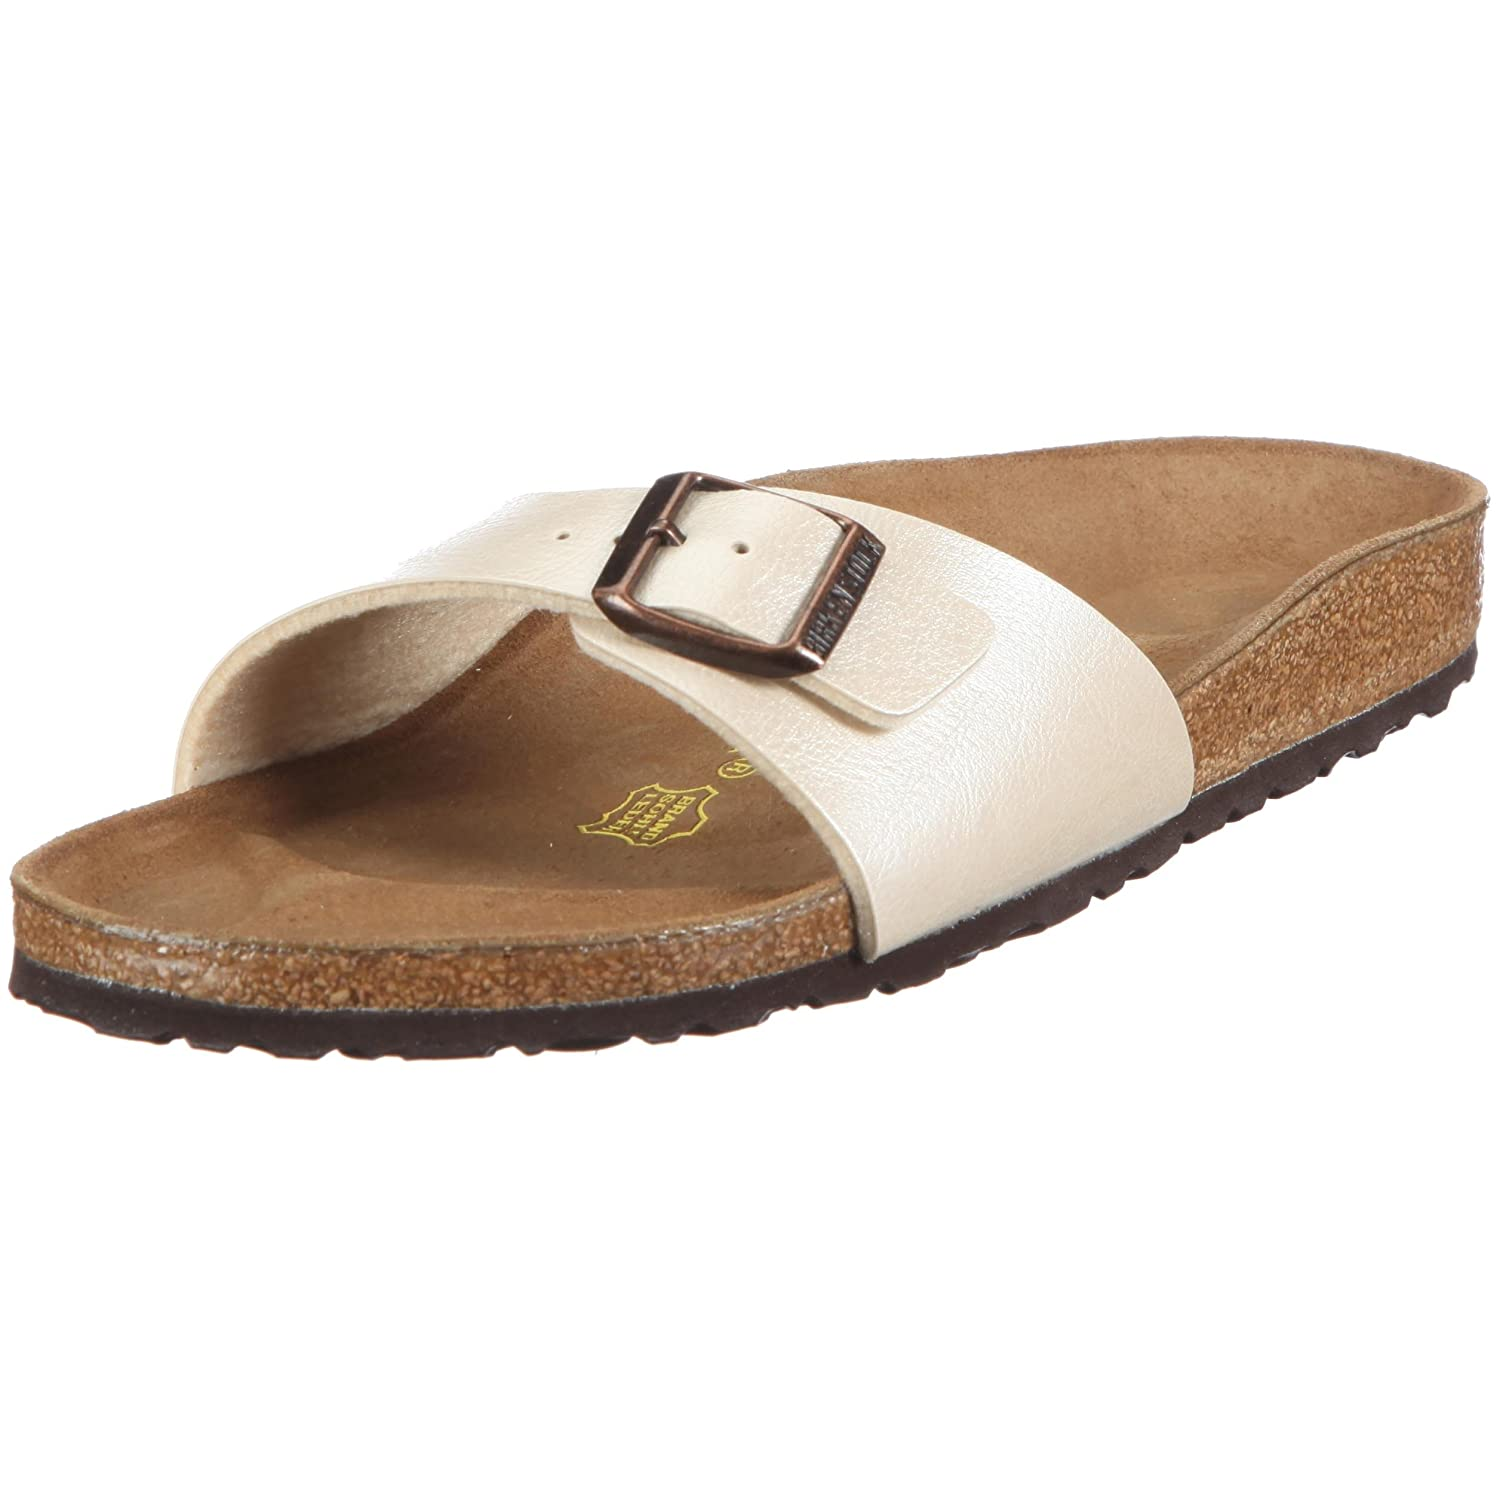 where do they sell birkenstock sandals hippie sandals. Black Bedroom Furniture Sets. Home Design Ideas